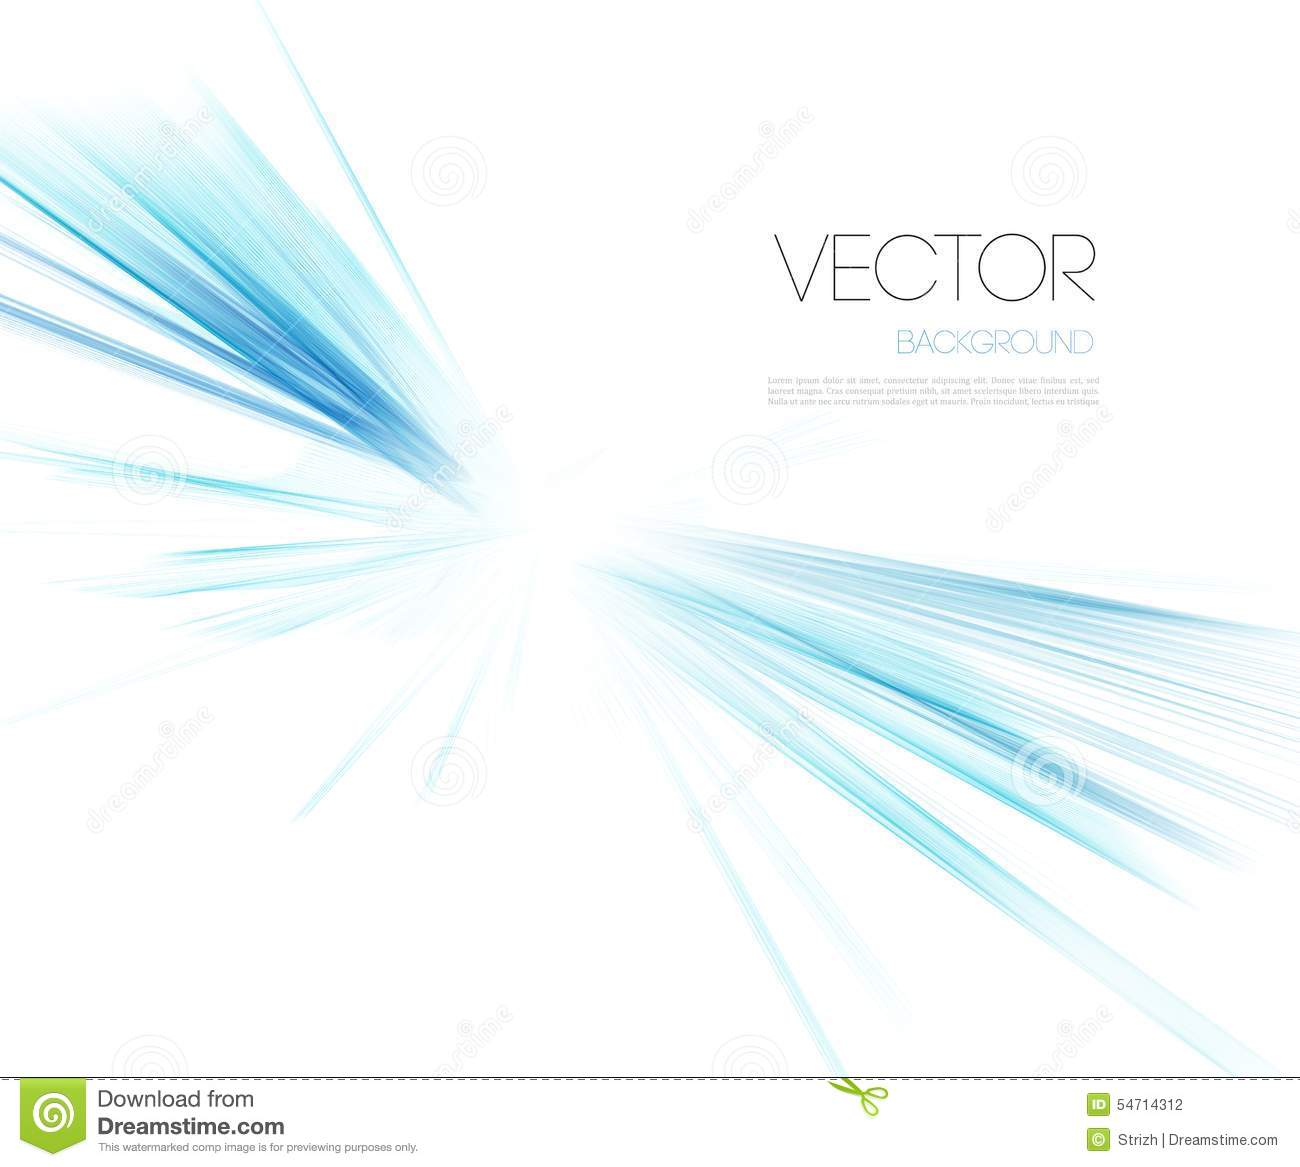 Abstract wave template background brochure design vector for Background for brochure design